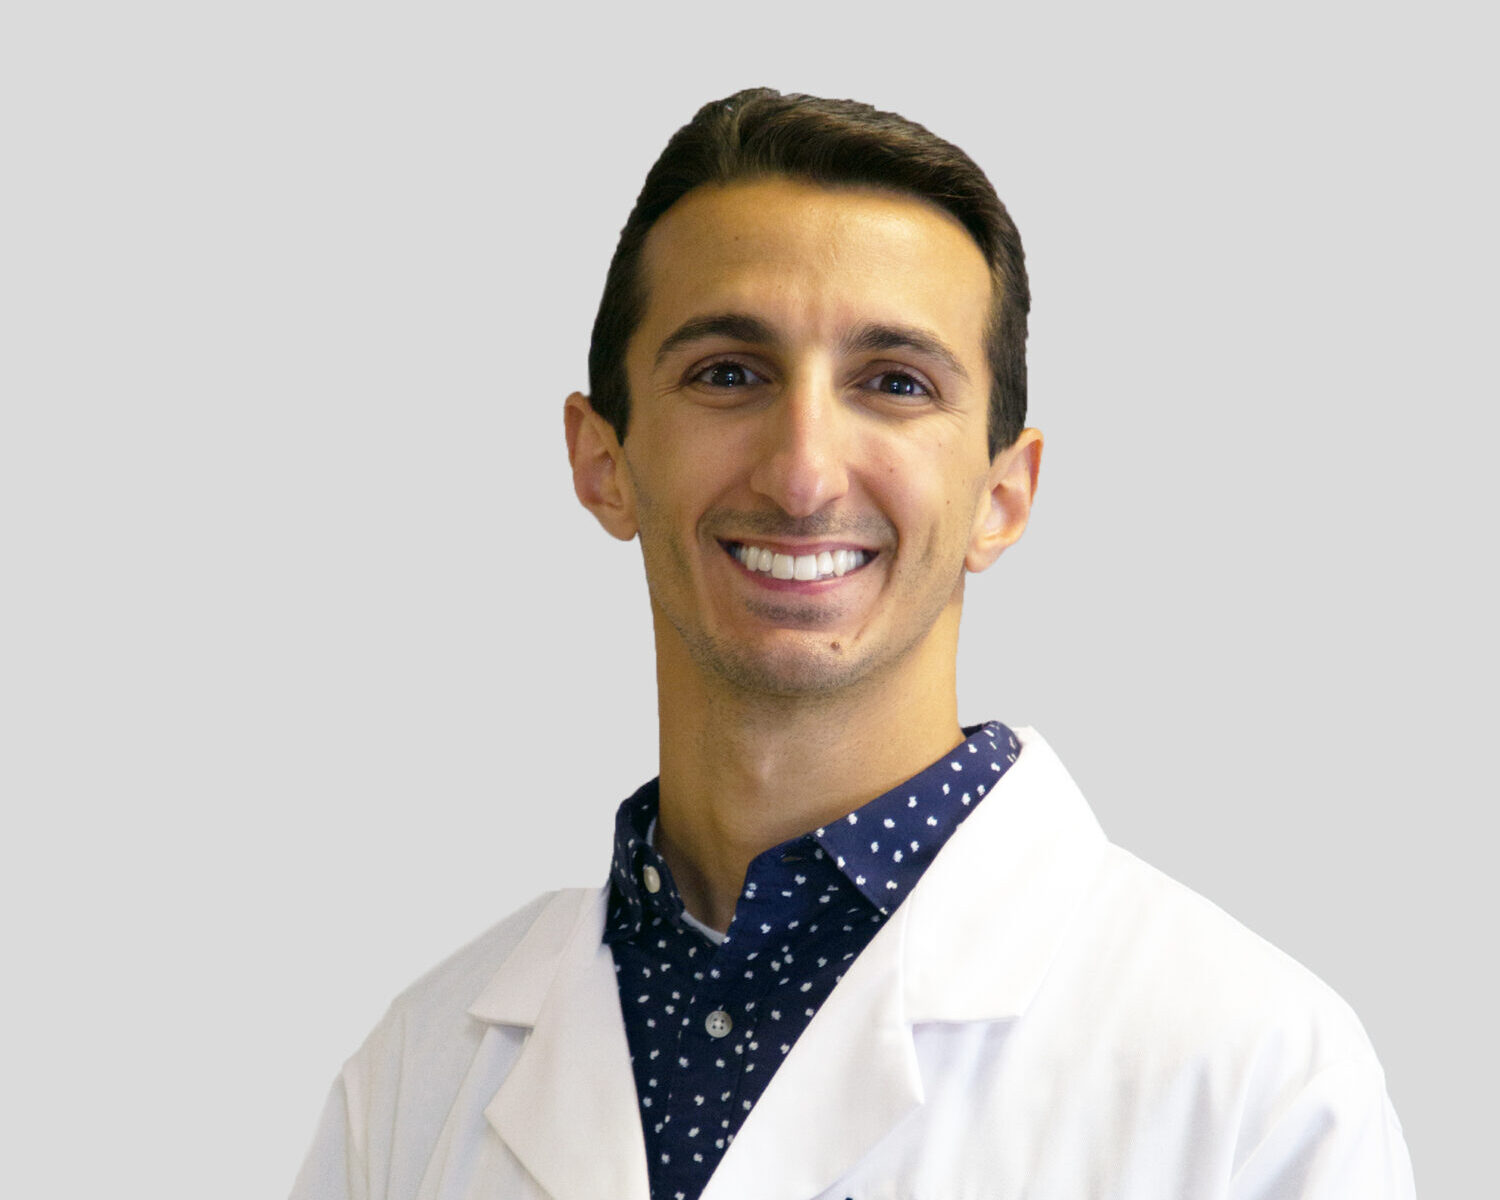 Dr. Robert Ciardullo of the Animal Medical Center in New York City